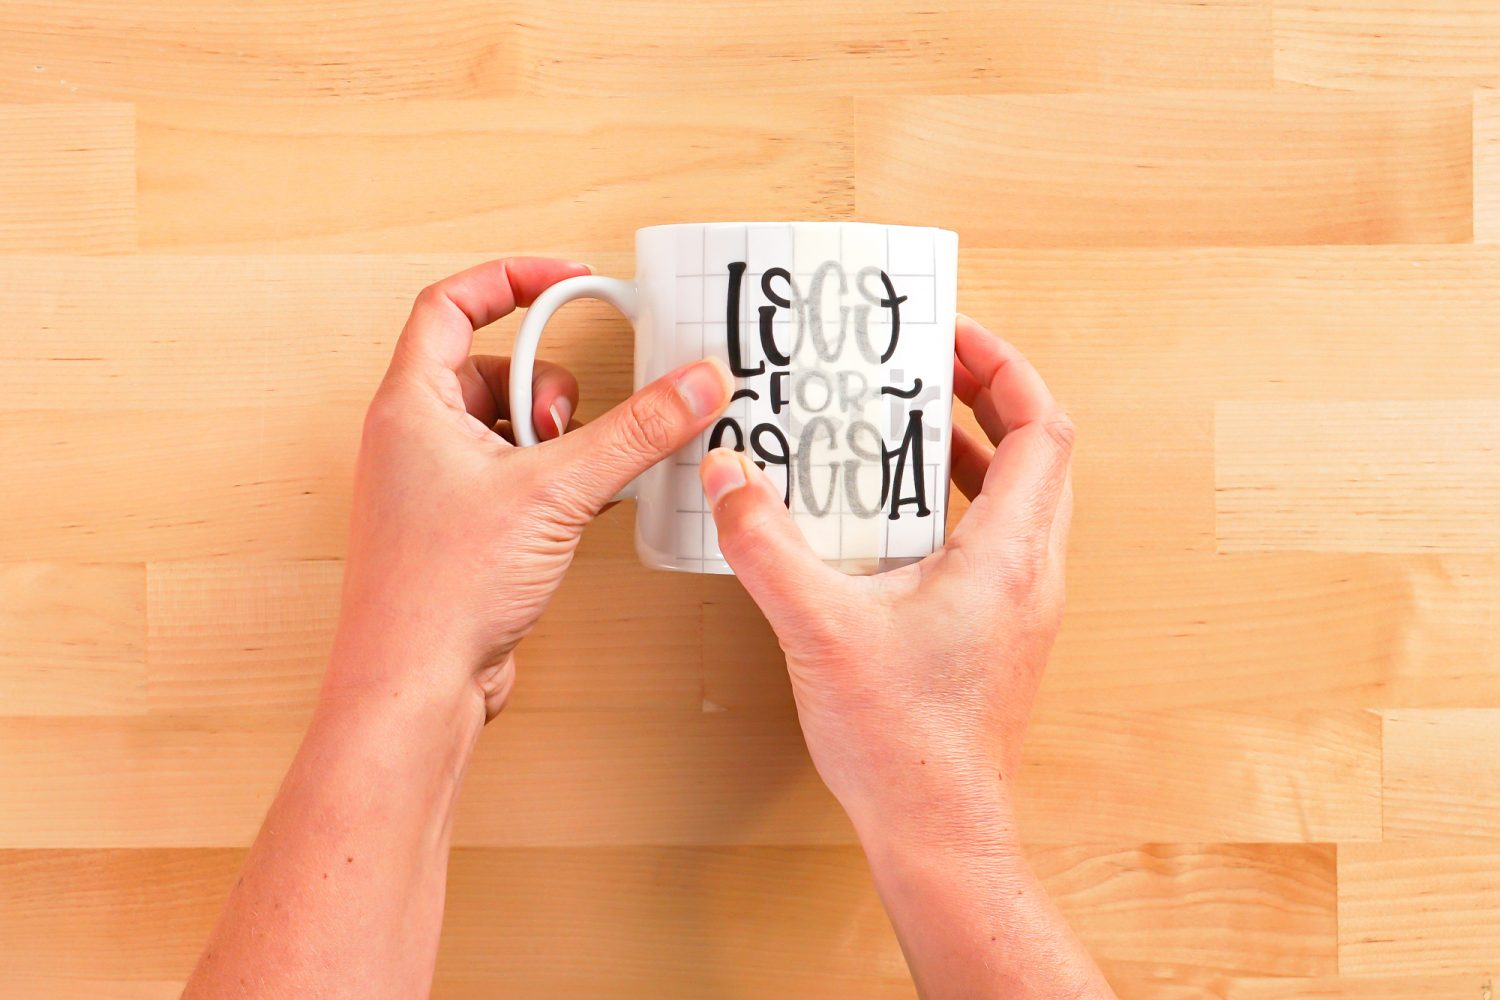 Hands placing the left side of the decal on the mug.